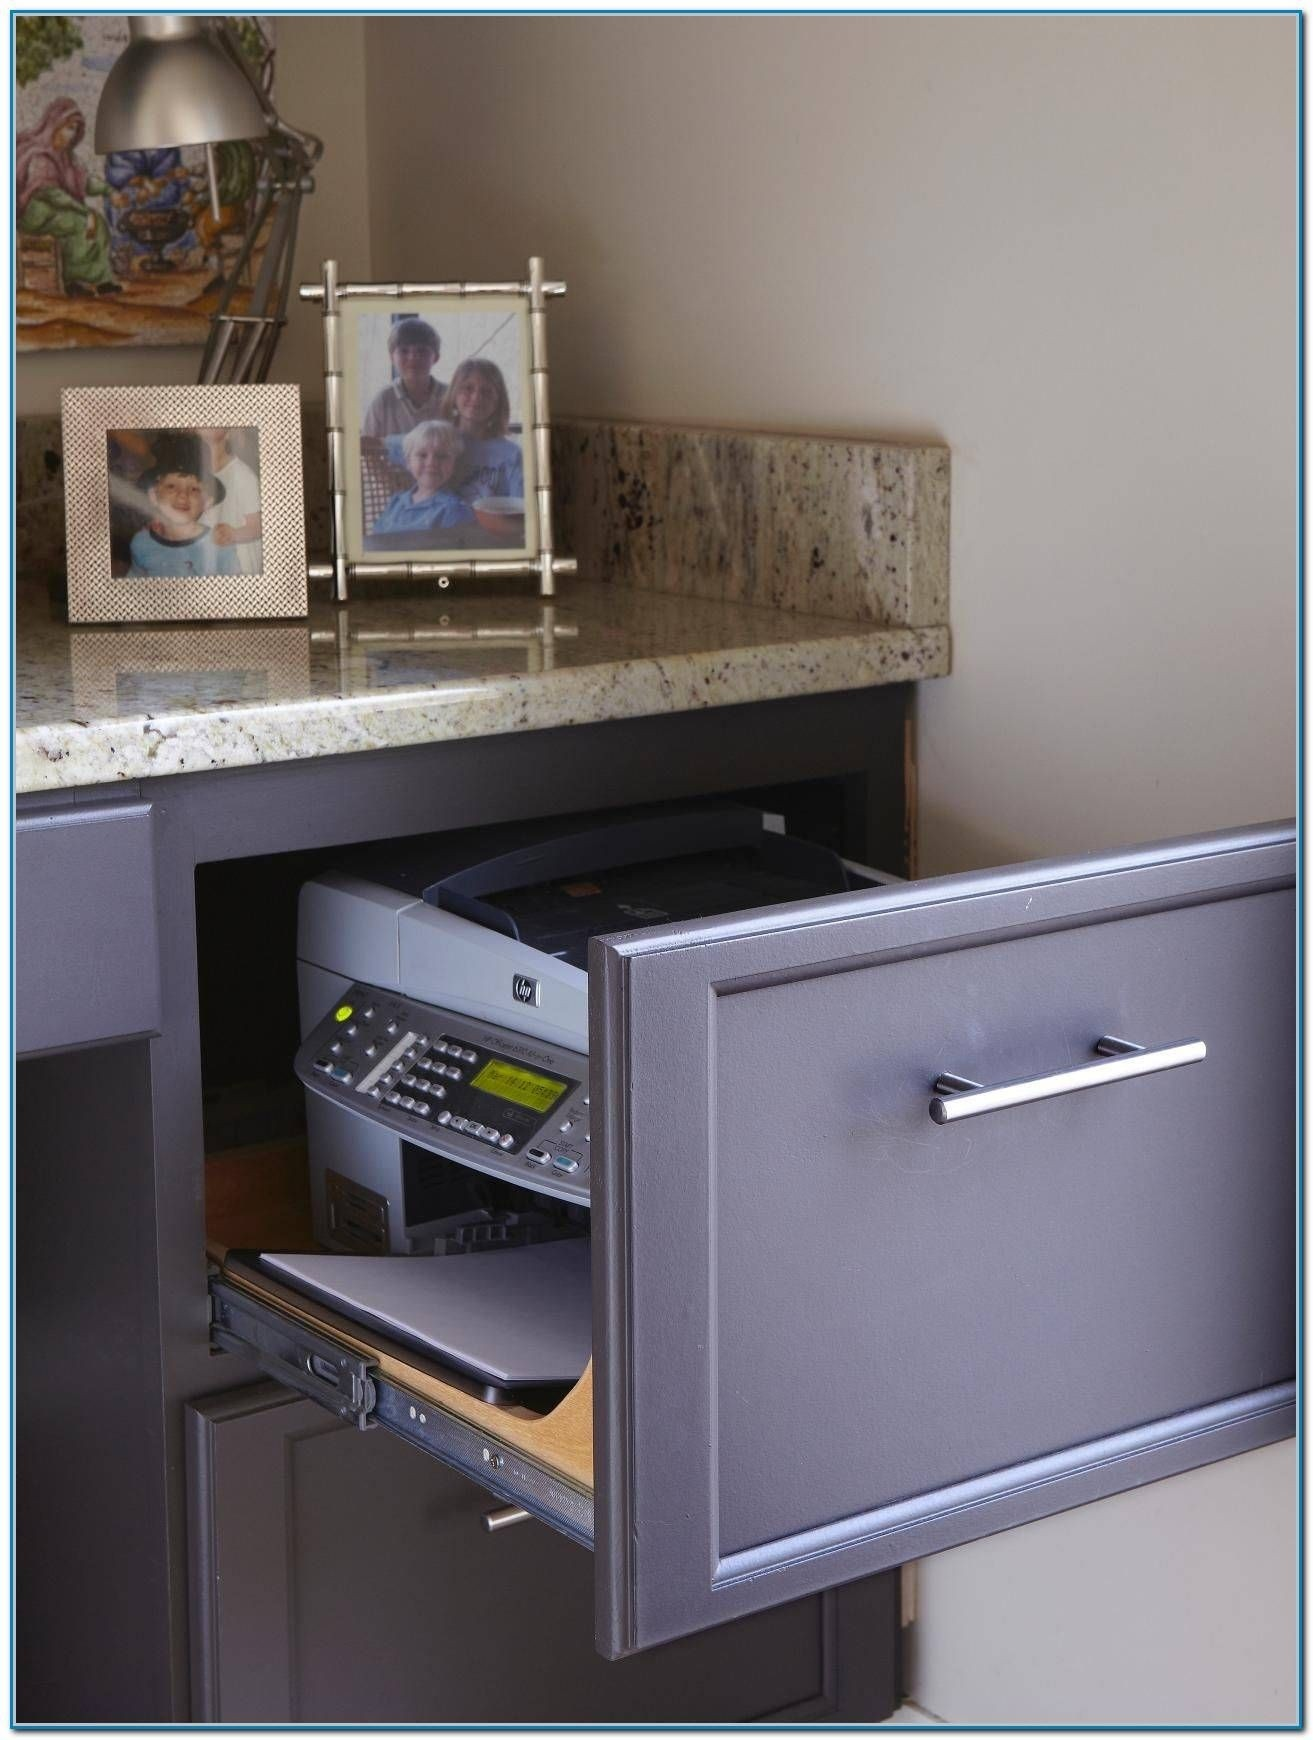 Superieur Keep Your Printer In A Retractable Drawer Inside The Filling Cabinet. Once  Unused, It Is Concealed Behind The Draweru0027s Surface, Not Cluttering The  Roomu0027s ...